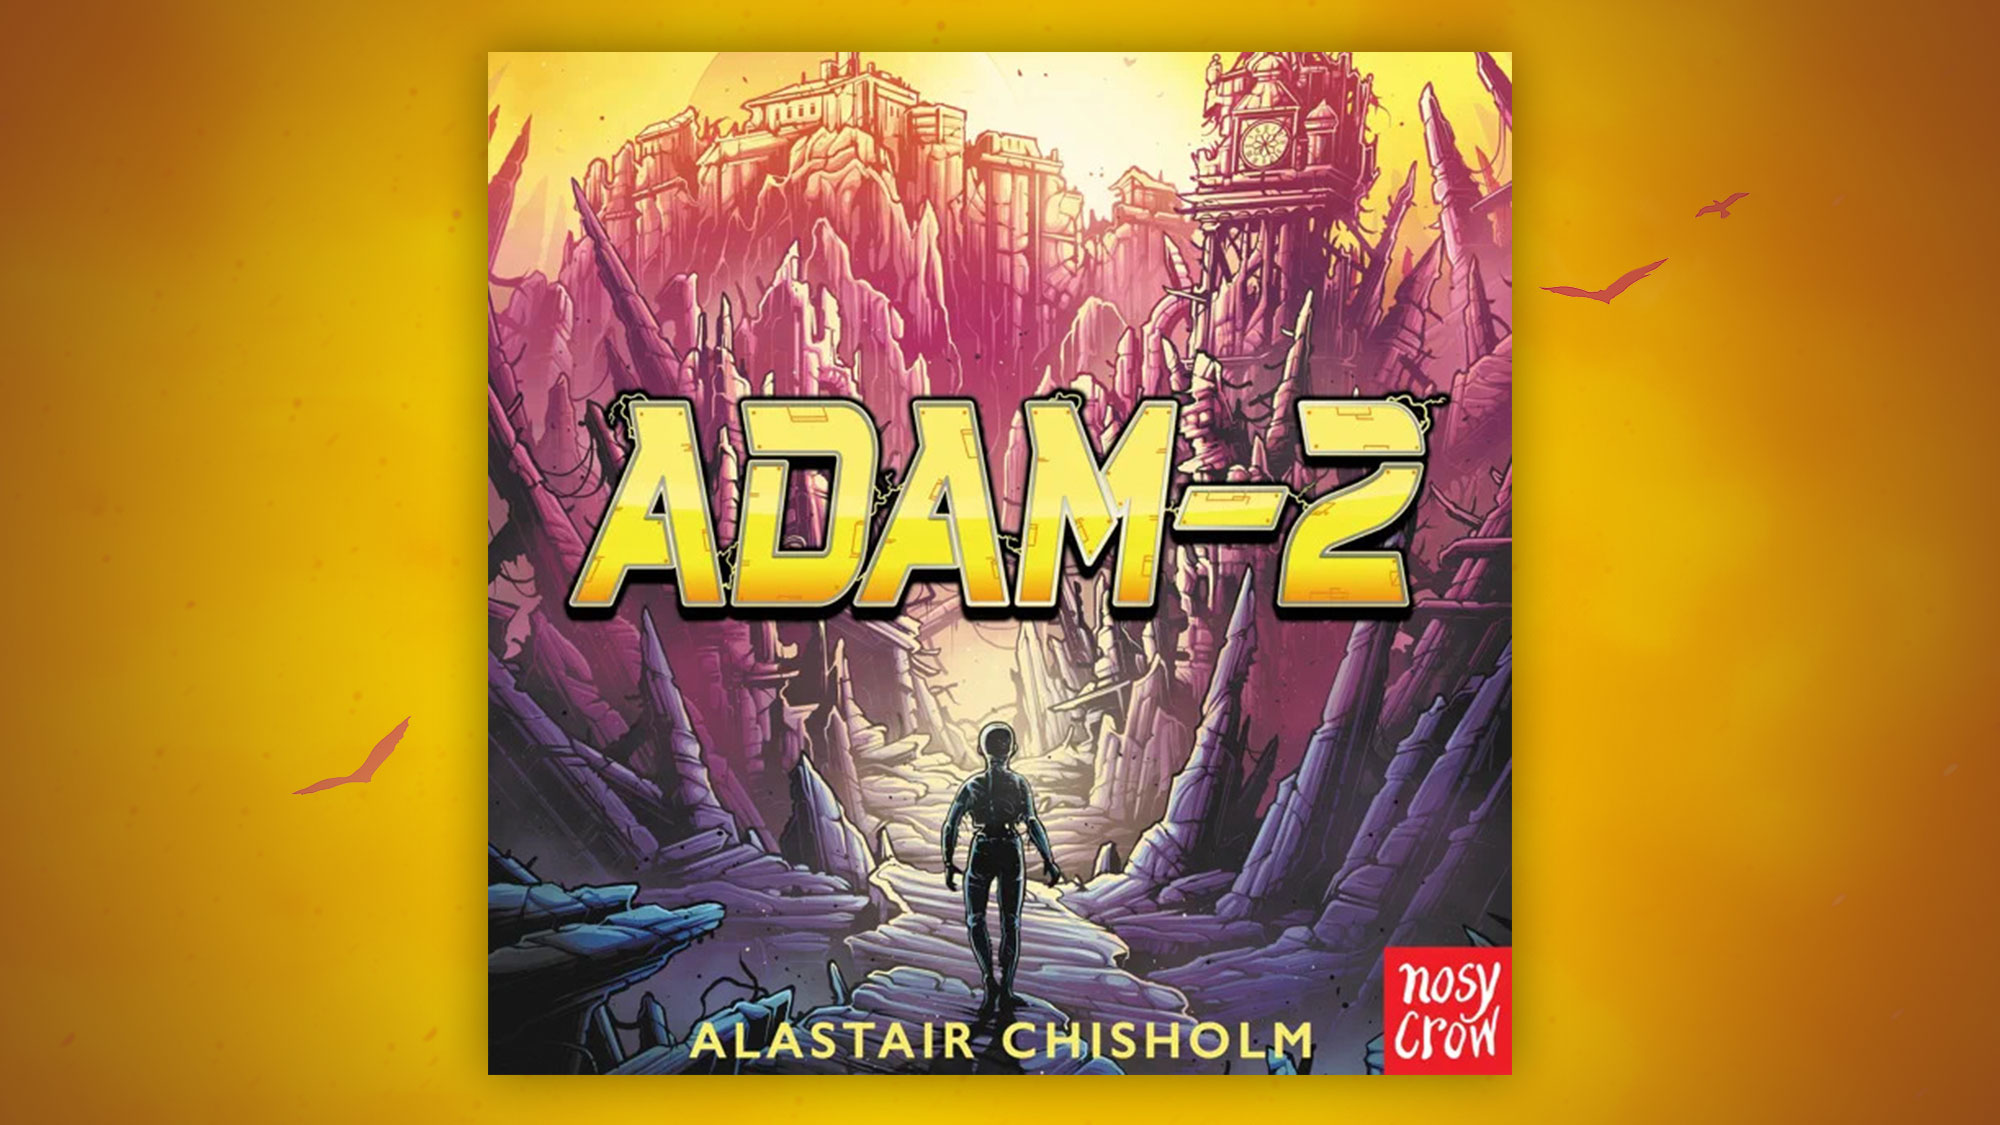 Adam-2 is now available as an audiobook